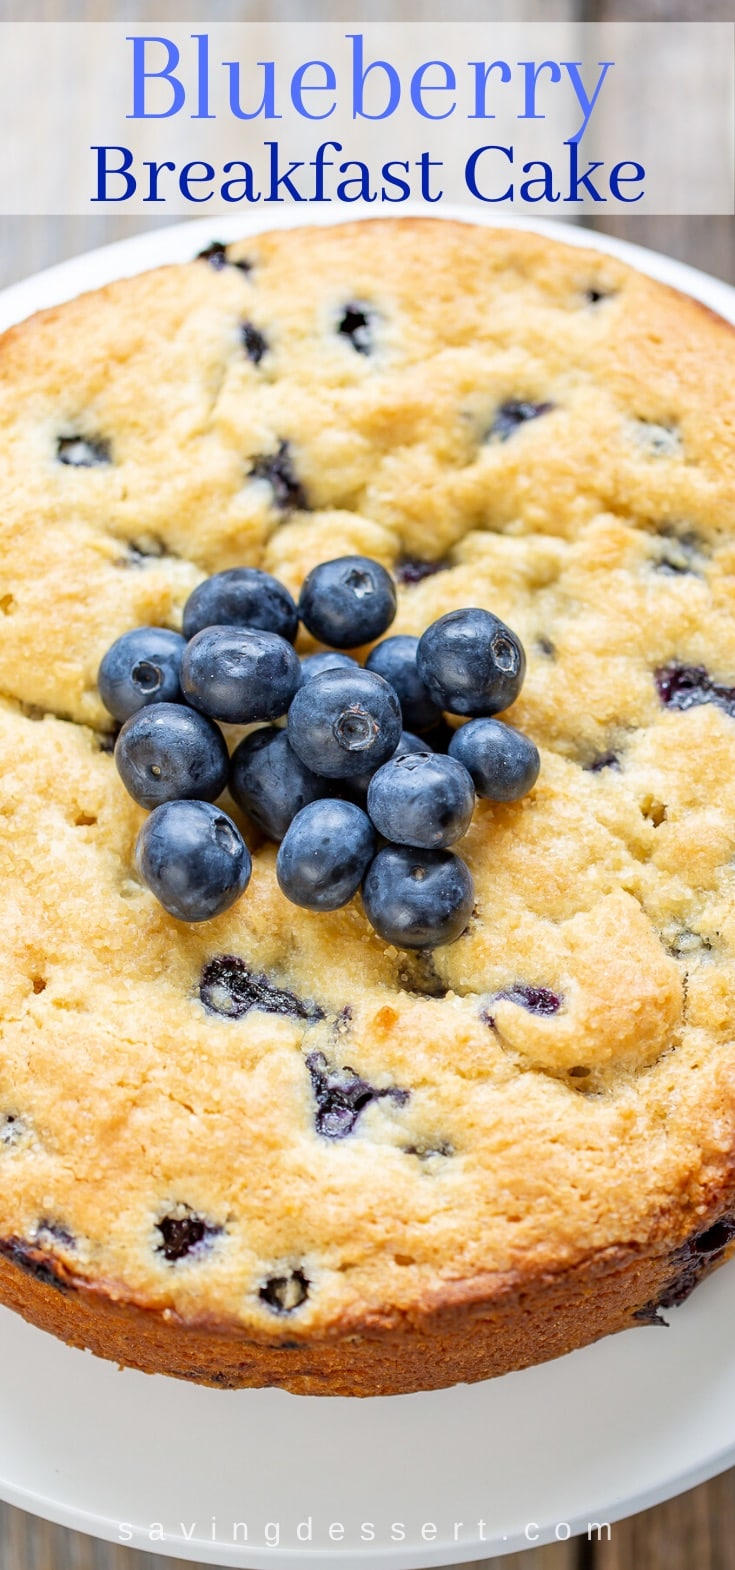 A blueberry breakfast cake topped with fresh blueberries